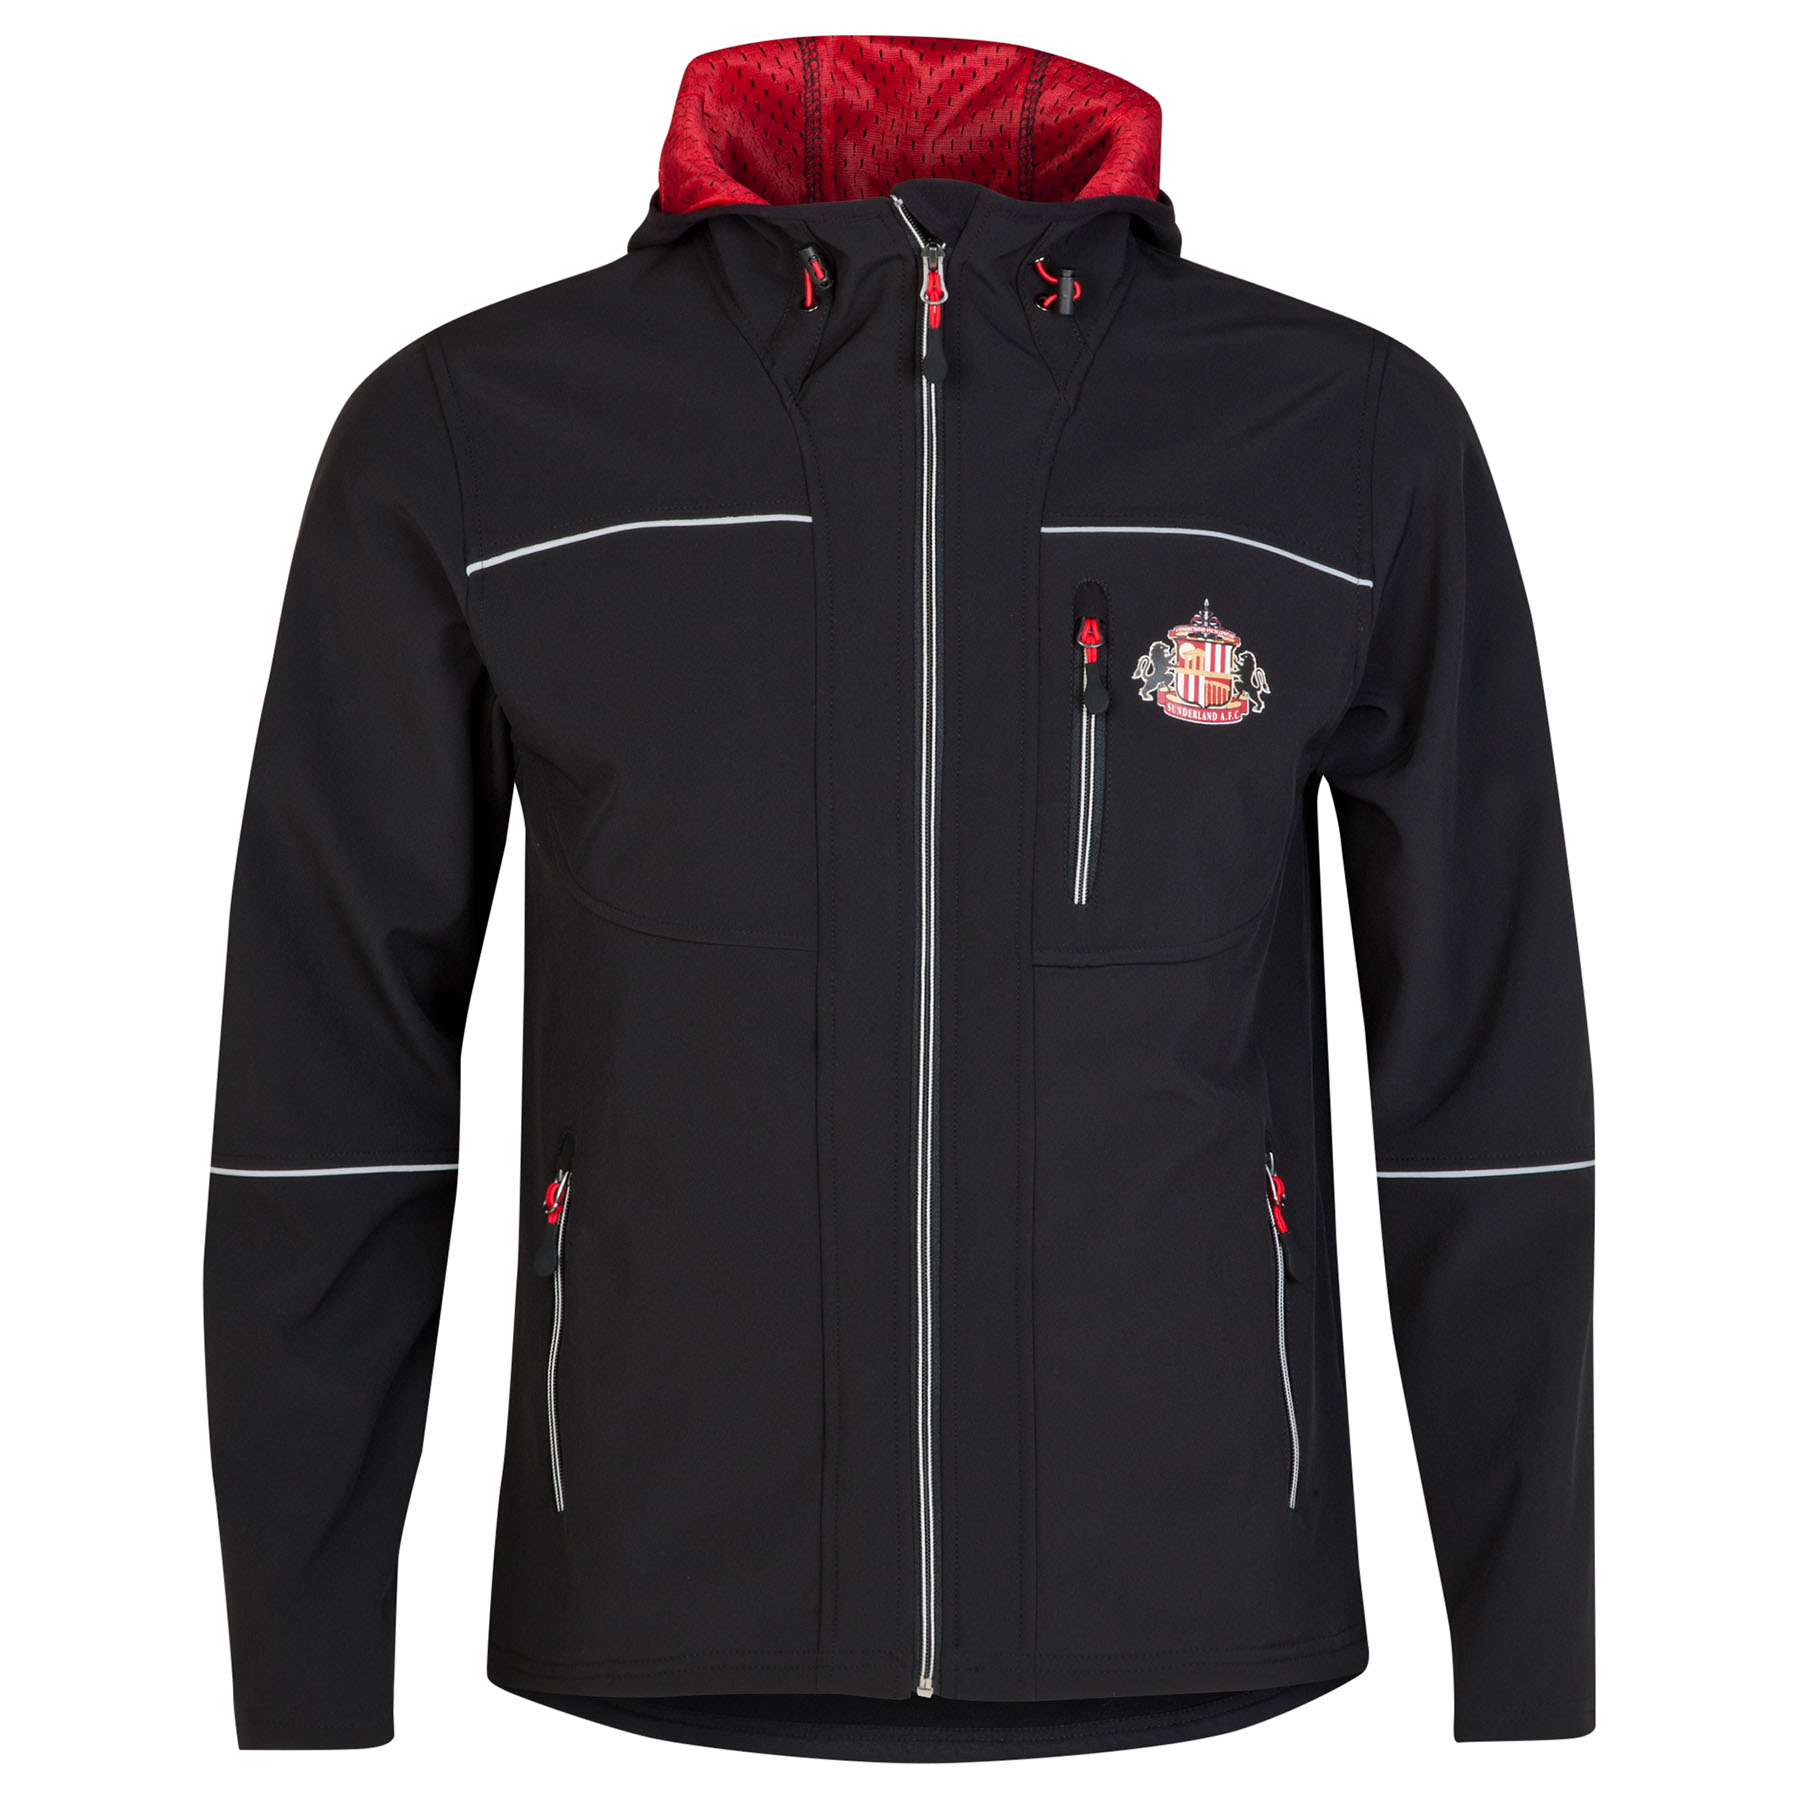 Sunderland Performance Softshell Jacket - Black - Mens